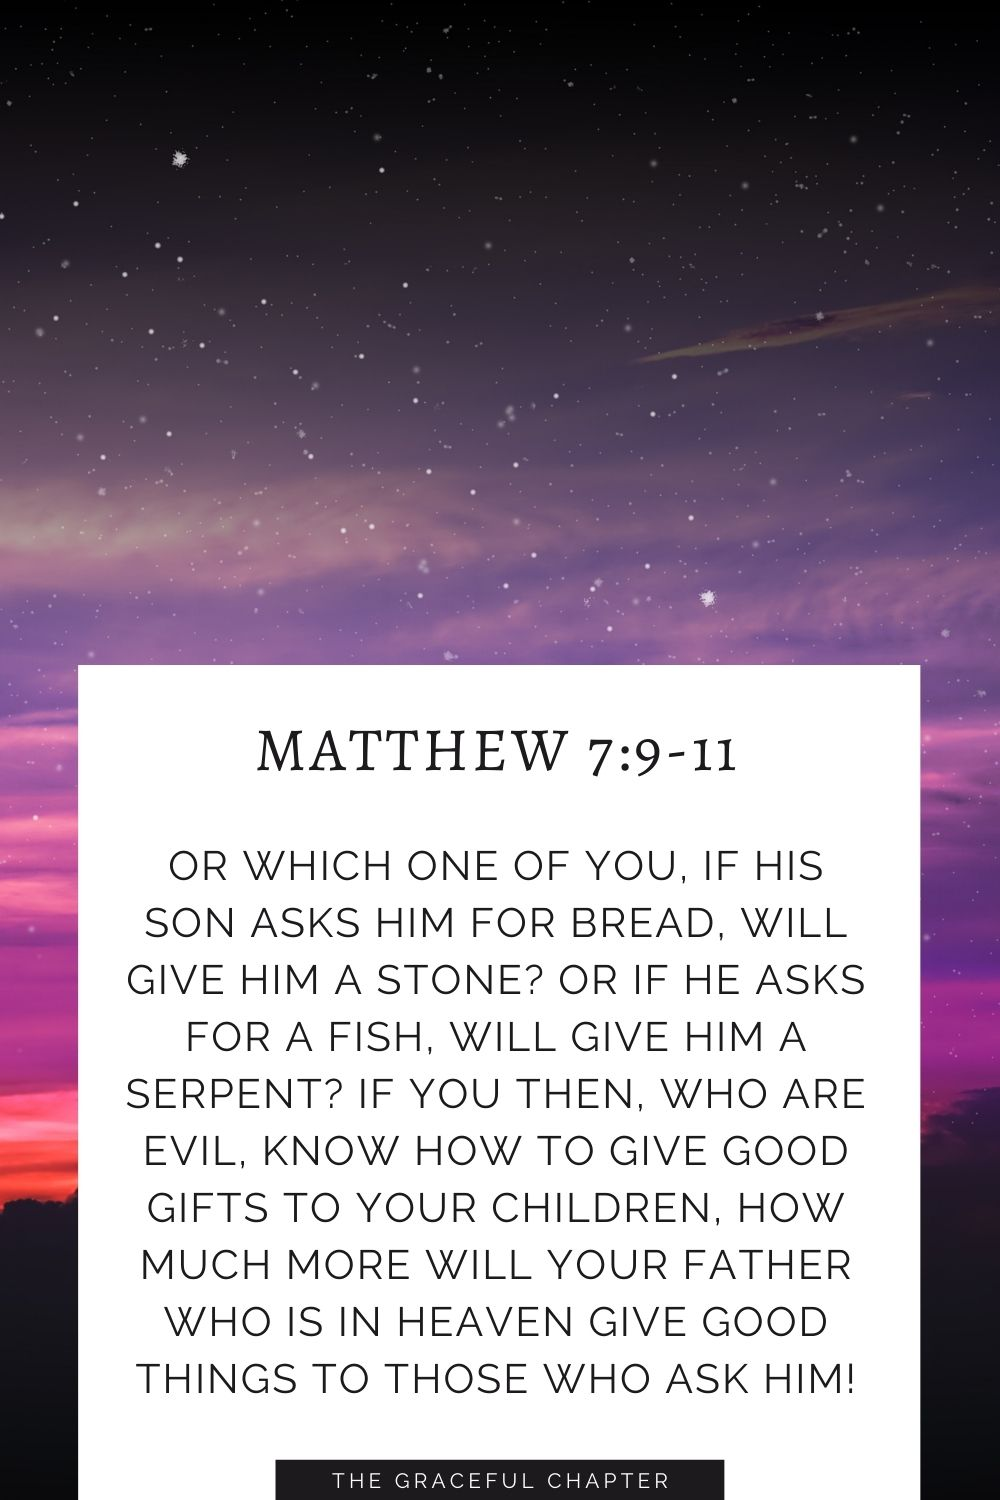 Or which one of you, if his son asks him for bread, will give him a stone? Or if he asks for a fish, will give him a serpent?If you then, who are evil, know how to give good gifts to your children, how much more will your Father who is in heaven give good things to those who ask him! Matthew 7:9-11